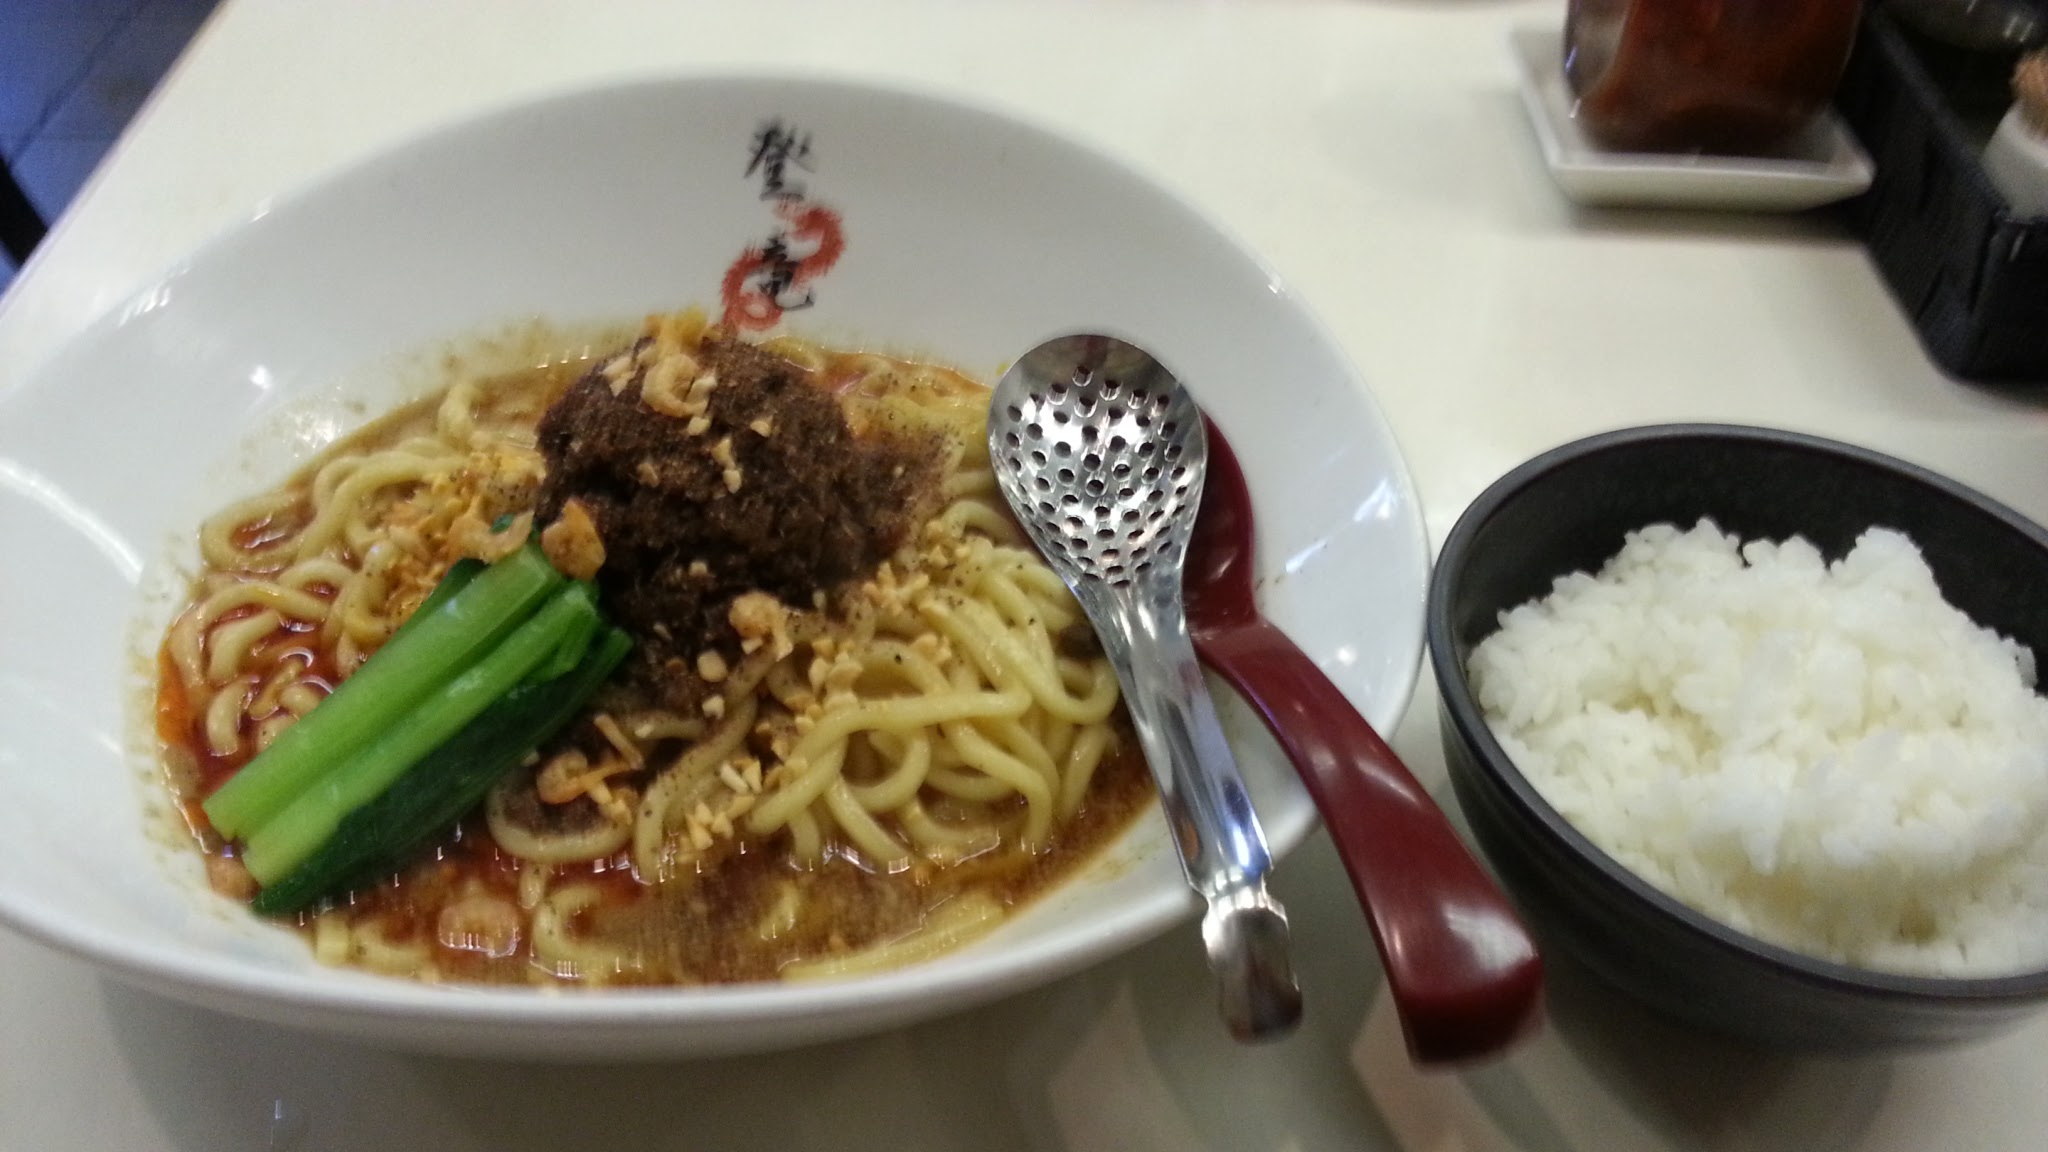 the rich Dandan noodles without soup and rice